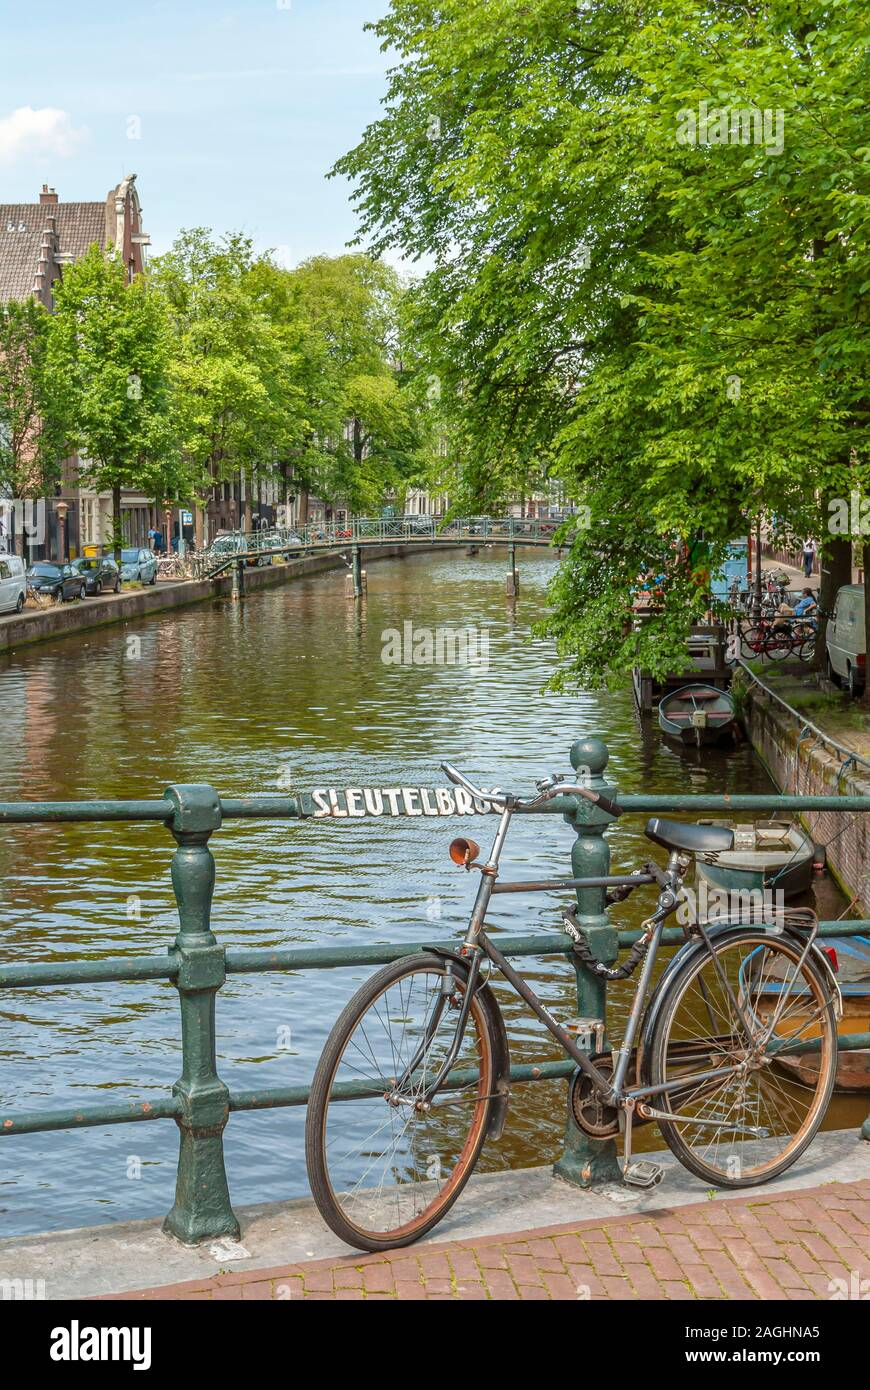 Old bicycle on the Sleutelbrug bridge in the city center of Amsterdam, Netherlande Stock Photo